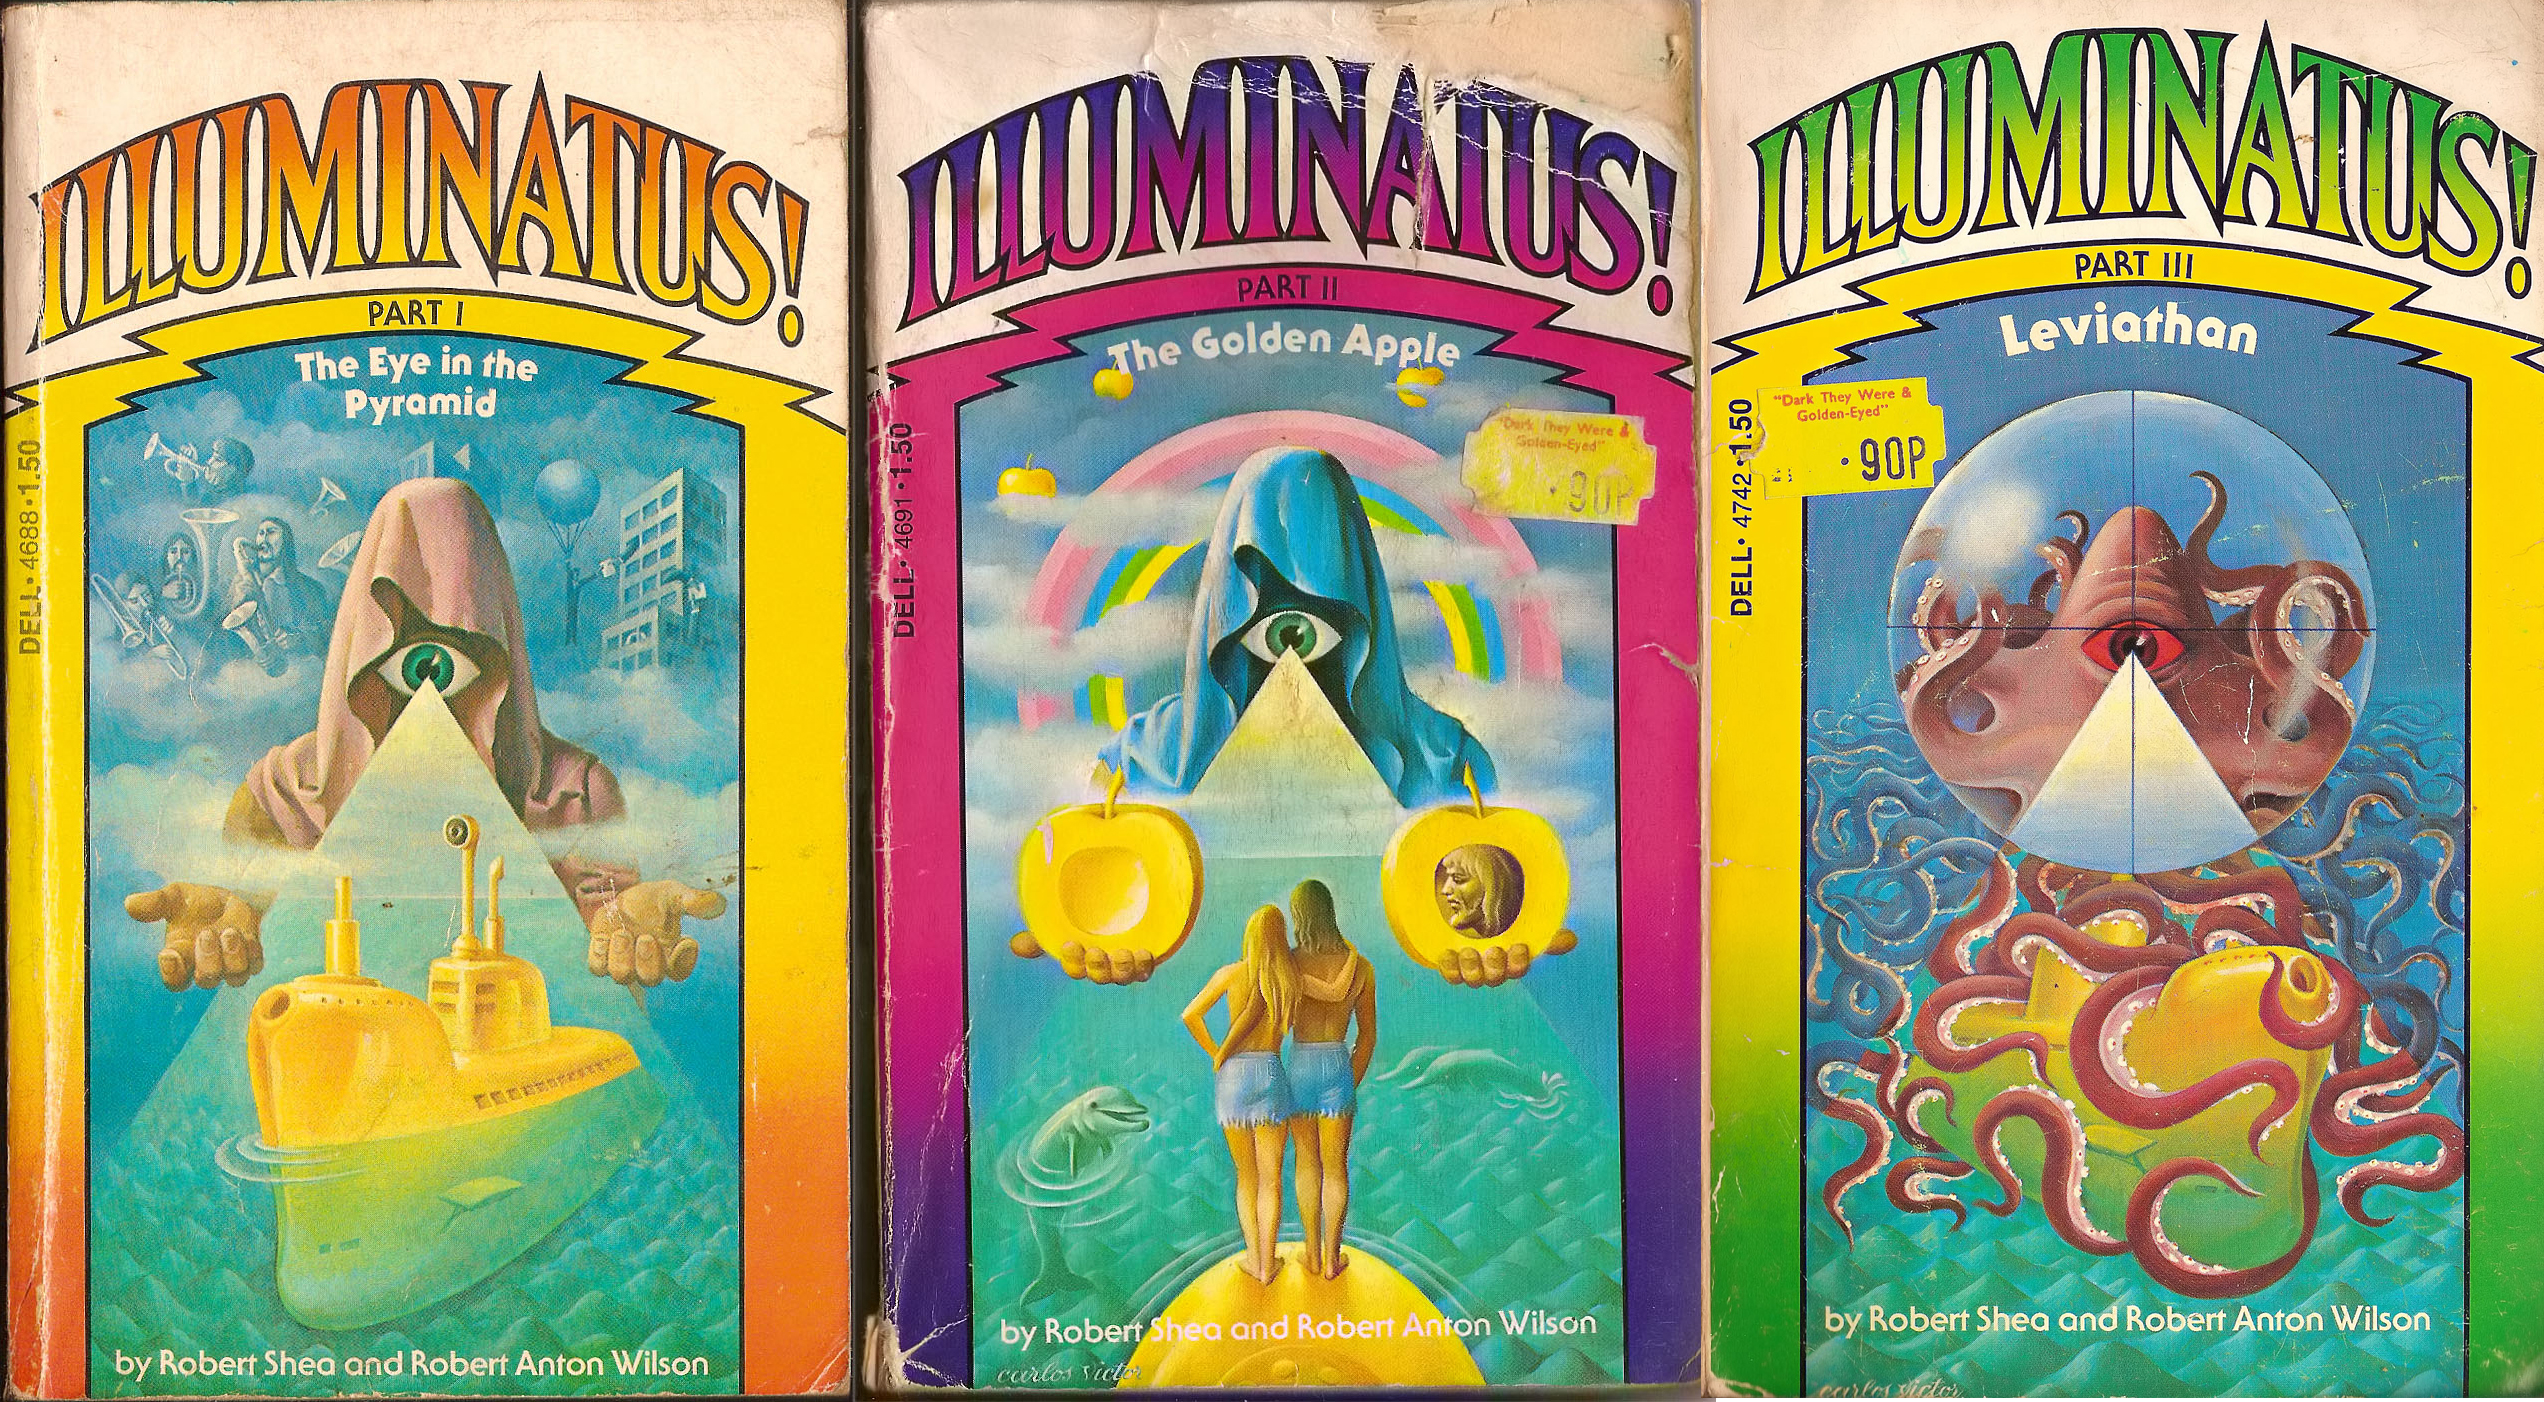 9 questions about the illuminati you were too afraid to ask vox the illuminatus trilogy some of the books that set the tone for our modern idea biocorpaavc